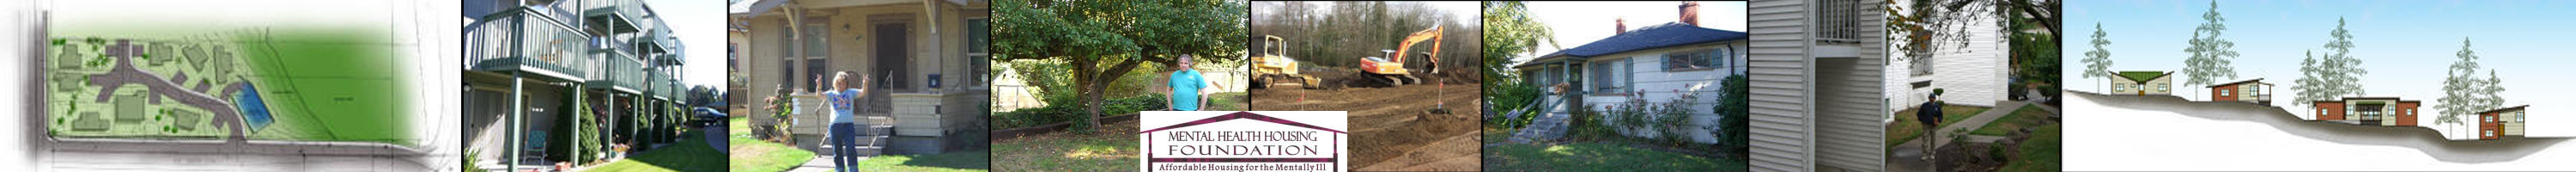 Mental Health Housing Foundation Affordable Housing For The